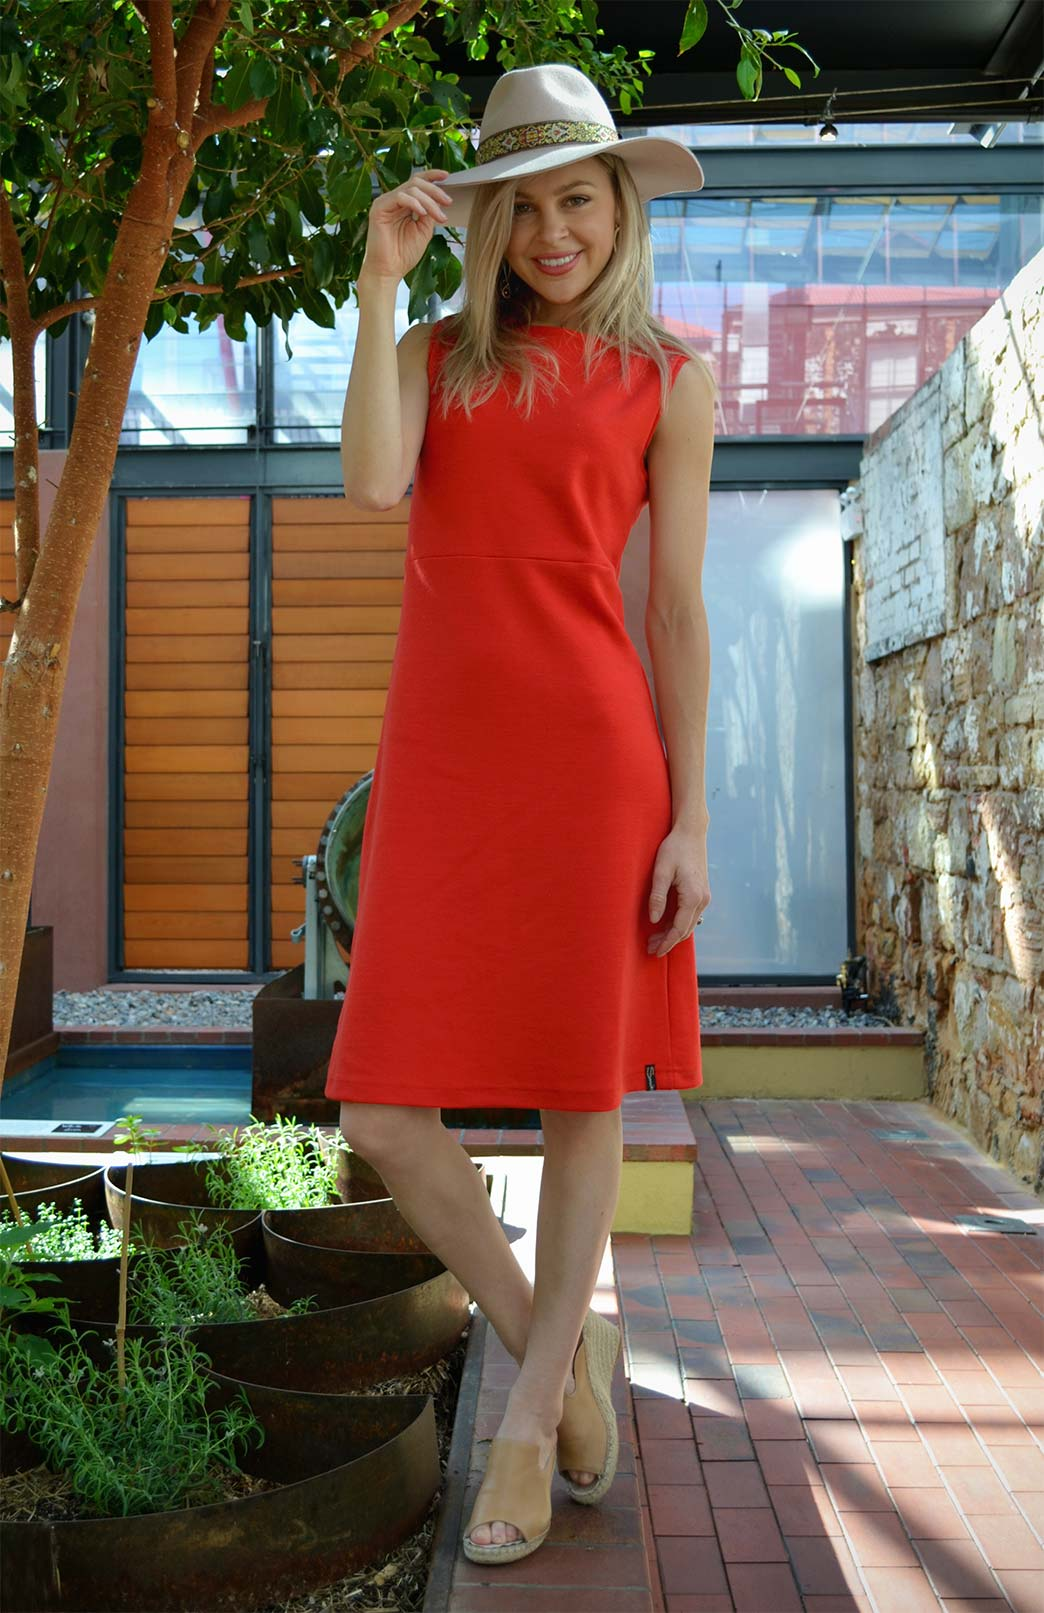 Asha Straight Dress - Women's Californian Poppy Red Straight Wool Dress - Smitten Merino Tasmania Australia